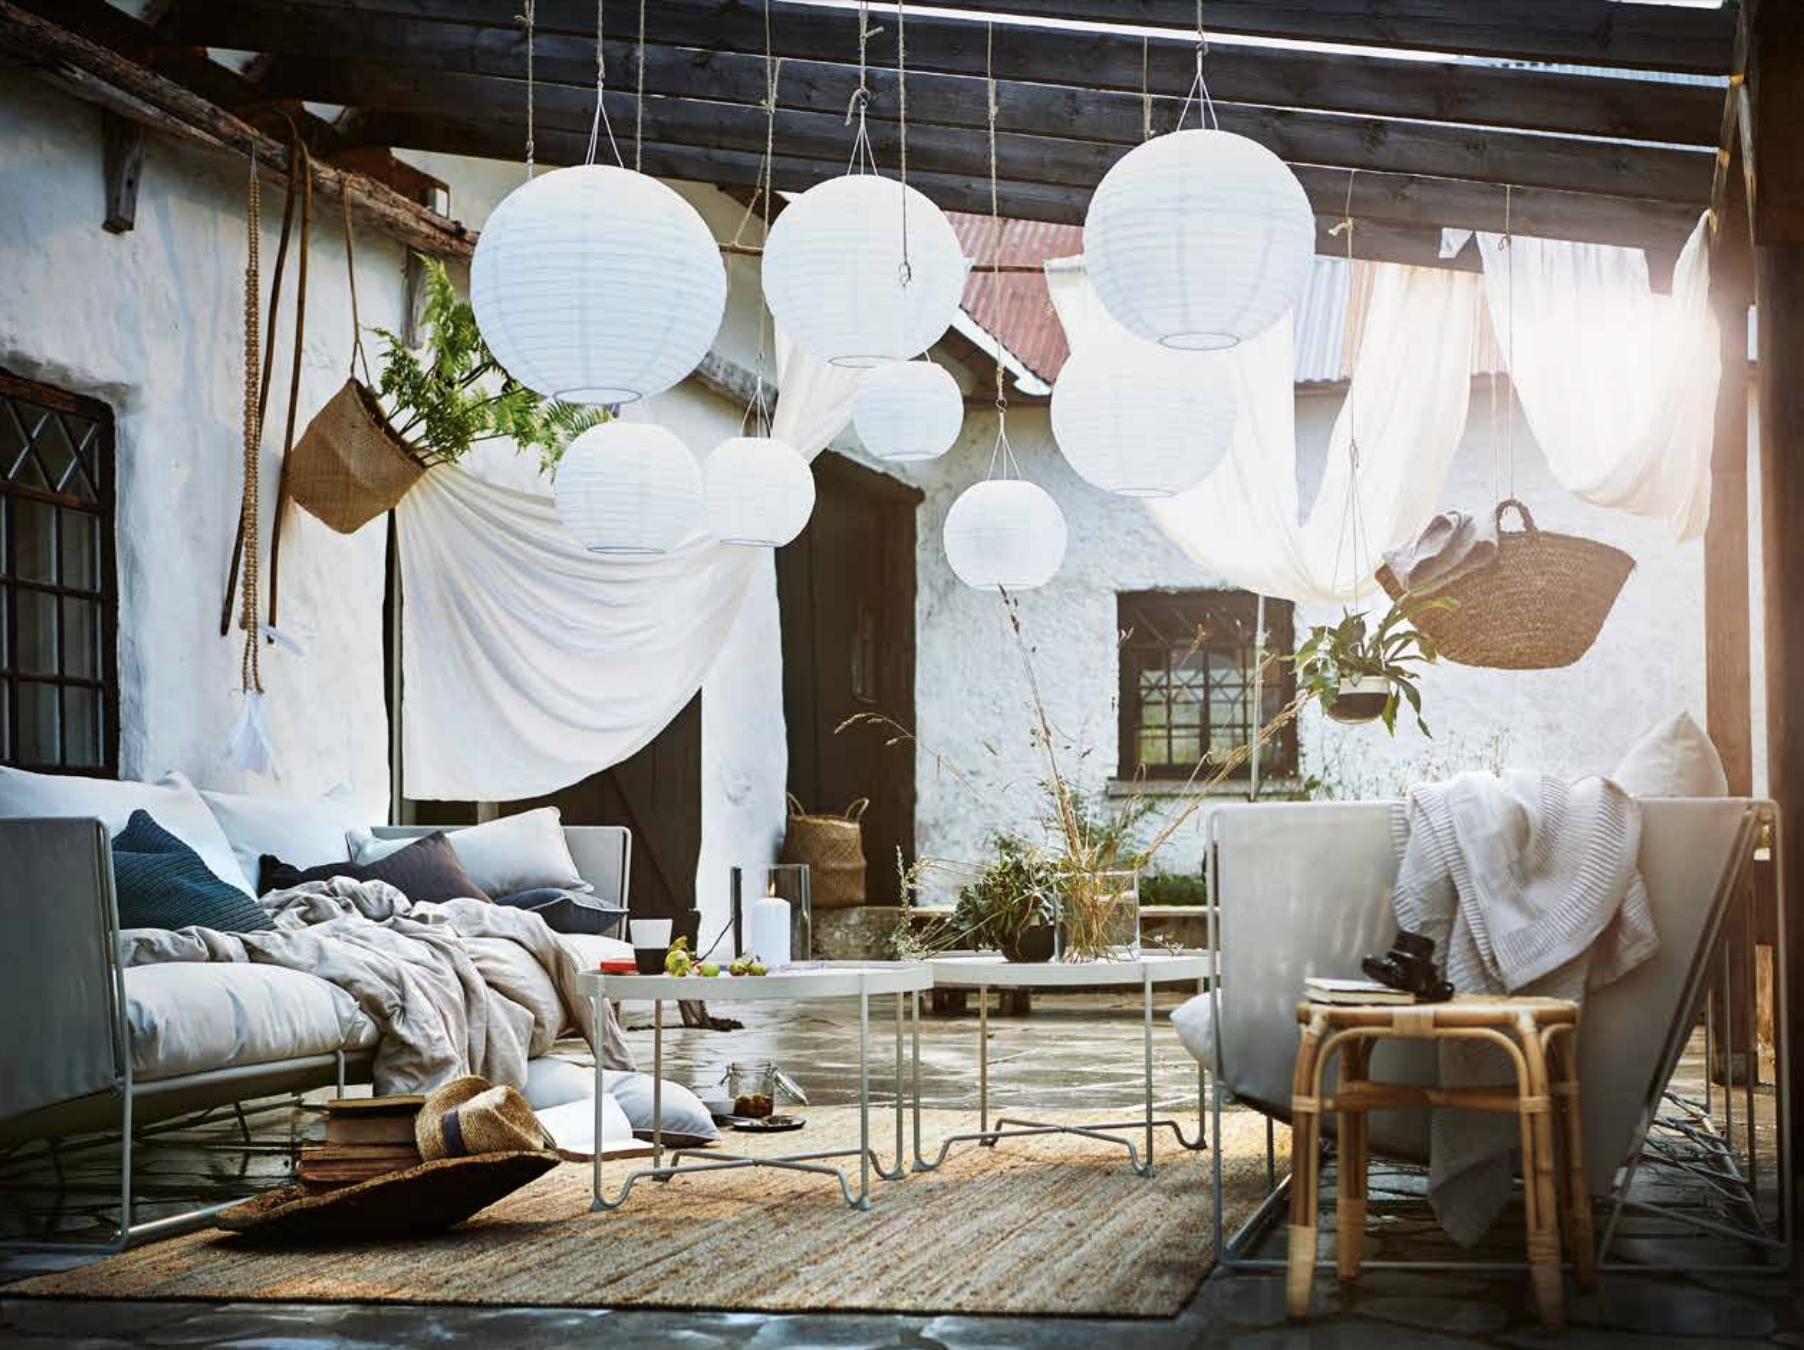 Ikea Summer 11: 11 Best Products for Outdoor Living on a Budget